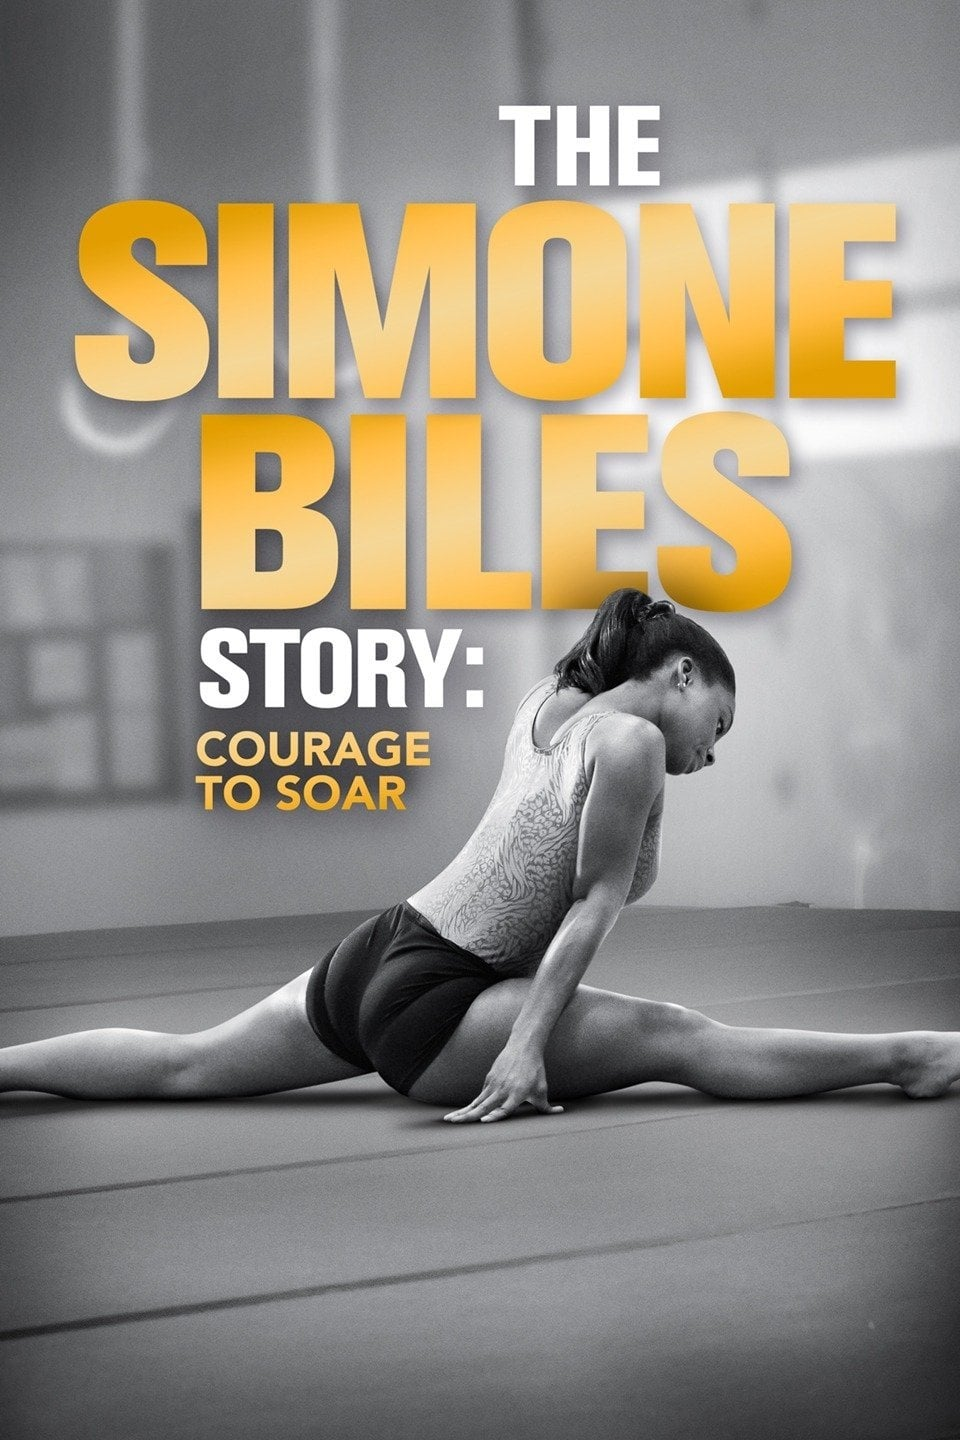 watch The Simone Biles Story: Courage to Soar 2018 online free